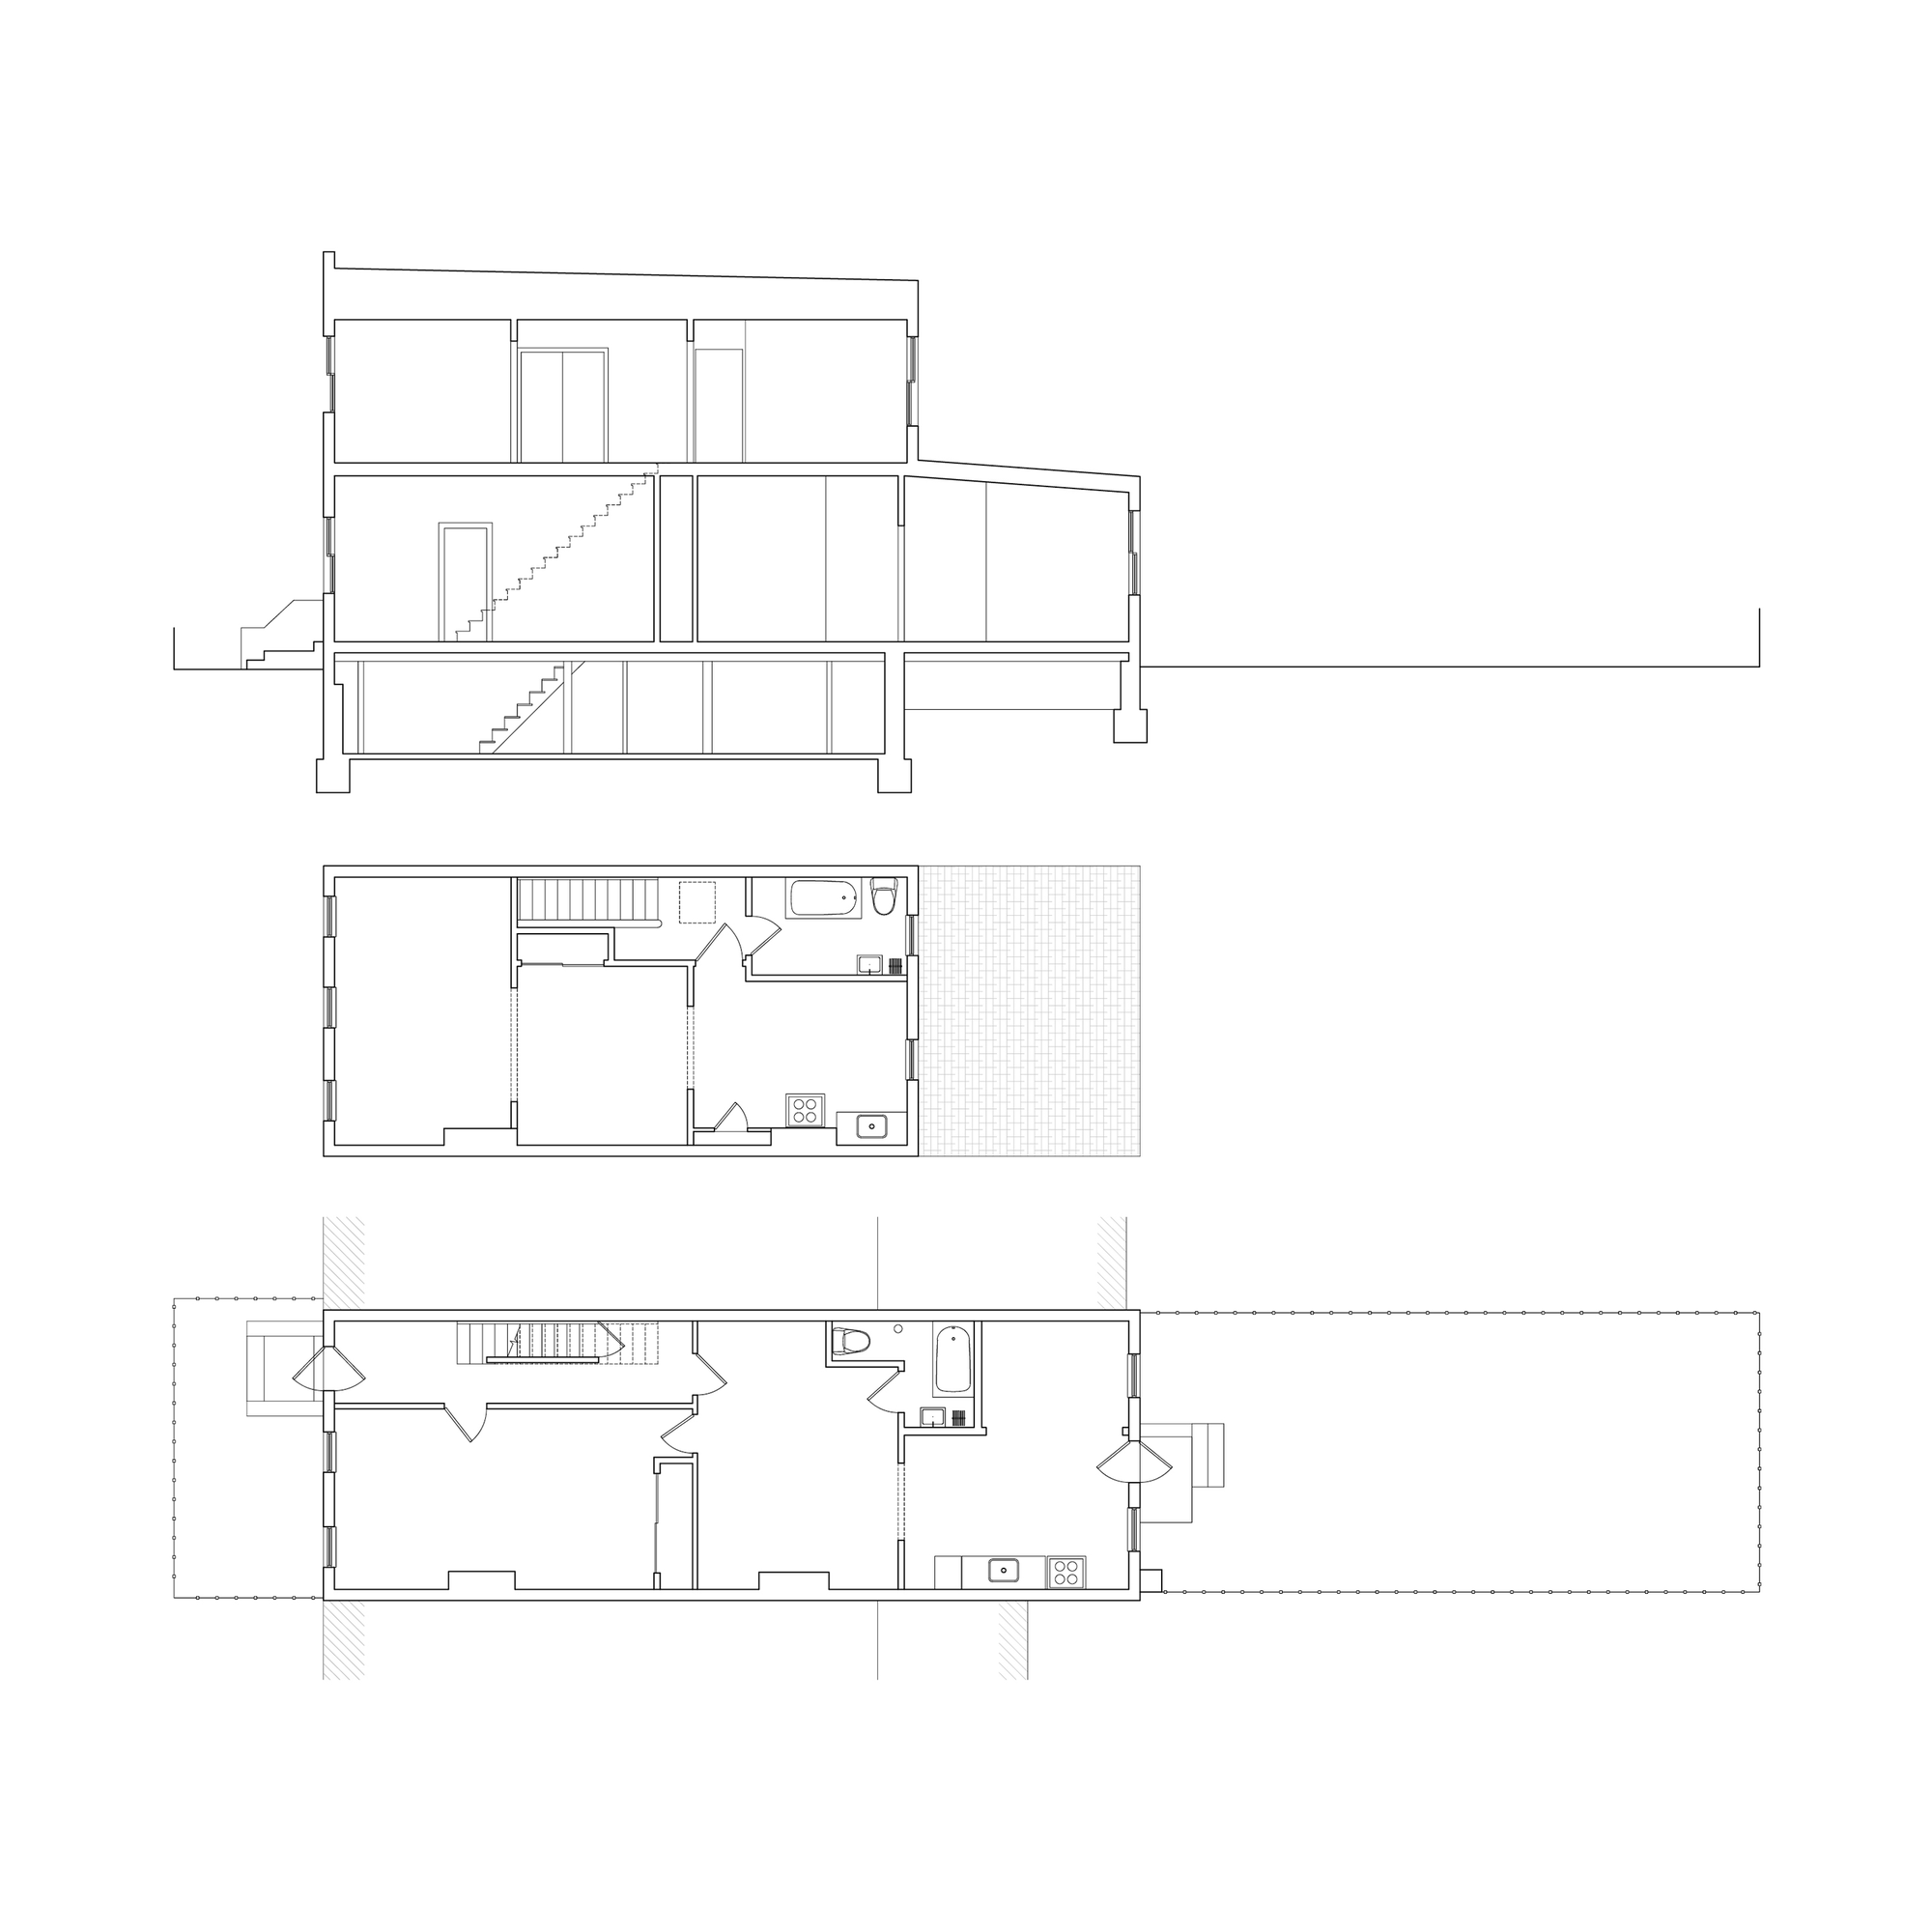 54f797e7e58ece86bb000030_brooklyn-row-house-office-of-architecture_section_-2-